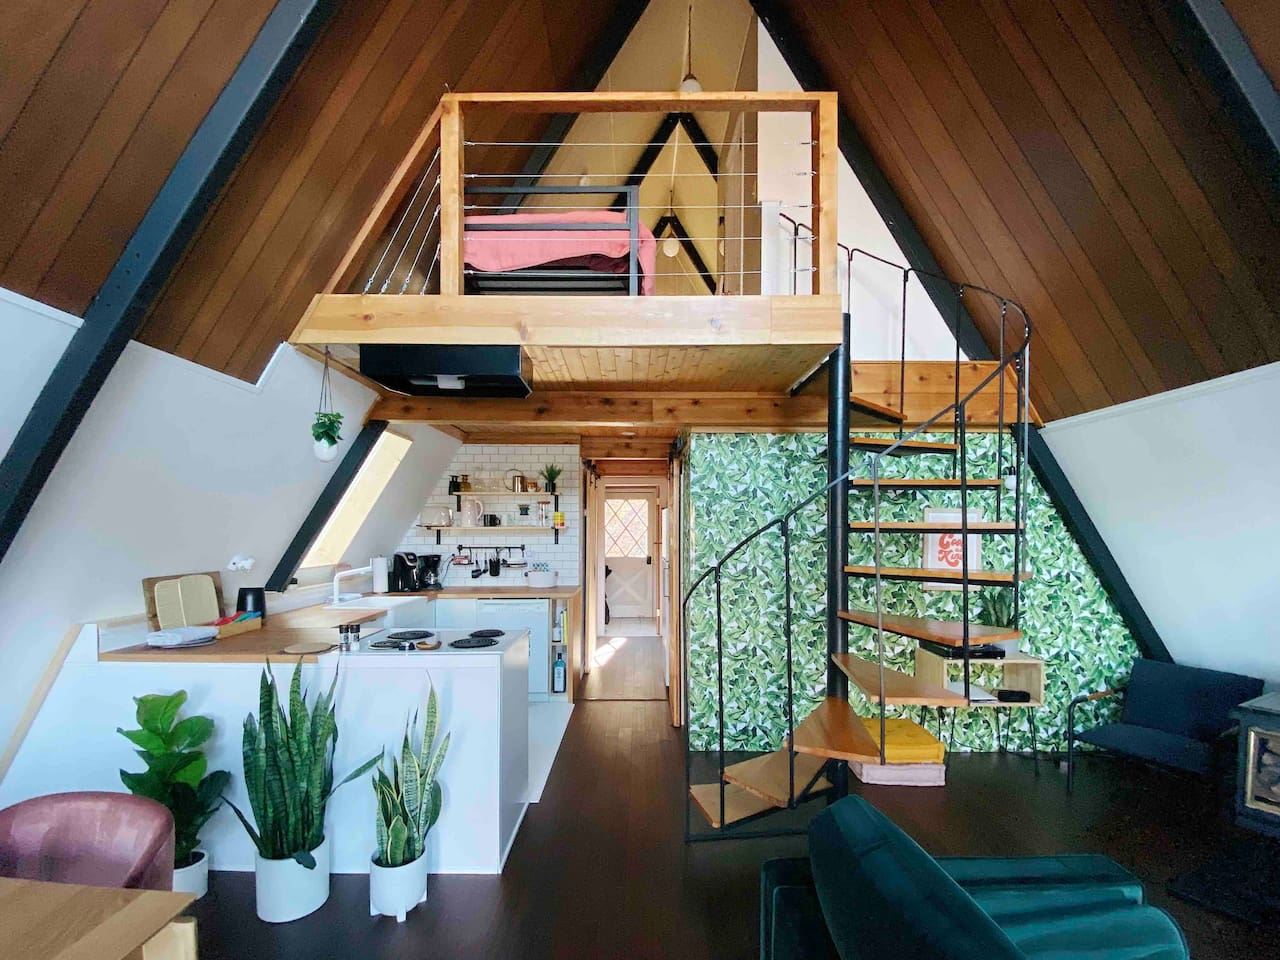 The ultimate A-frame cabin experience: kitchen to the left, pantry on the right. Notice the loft upstairs which overlooks the open living room and dining area.